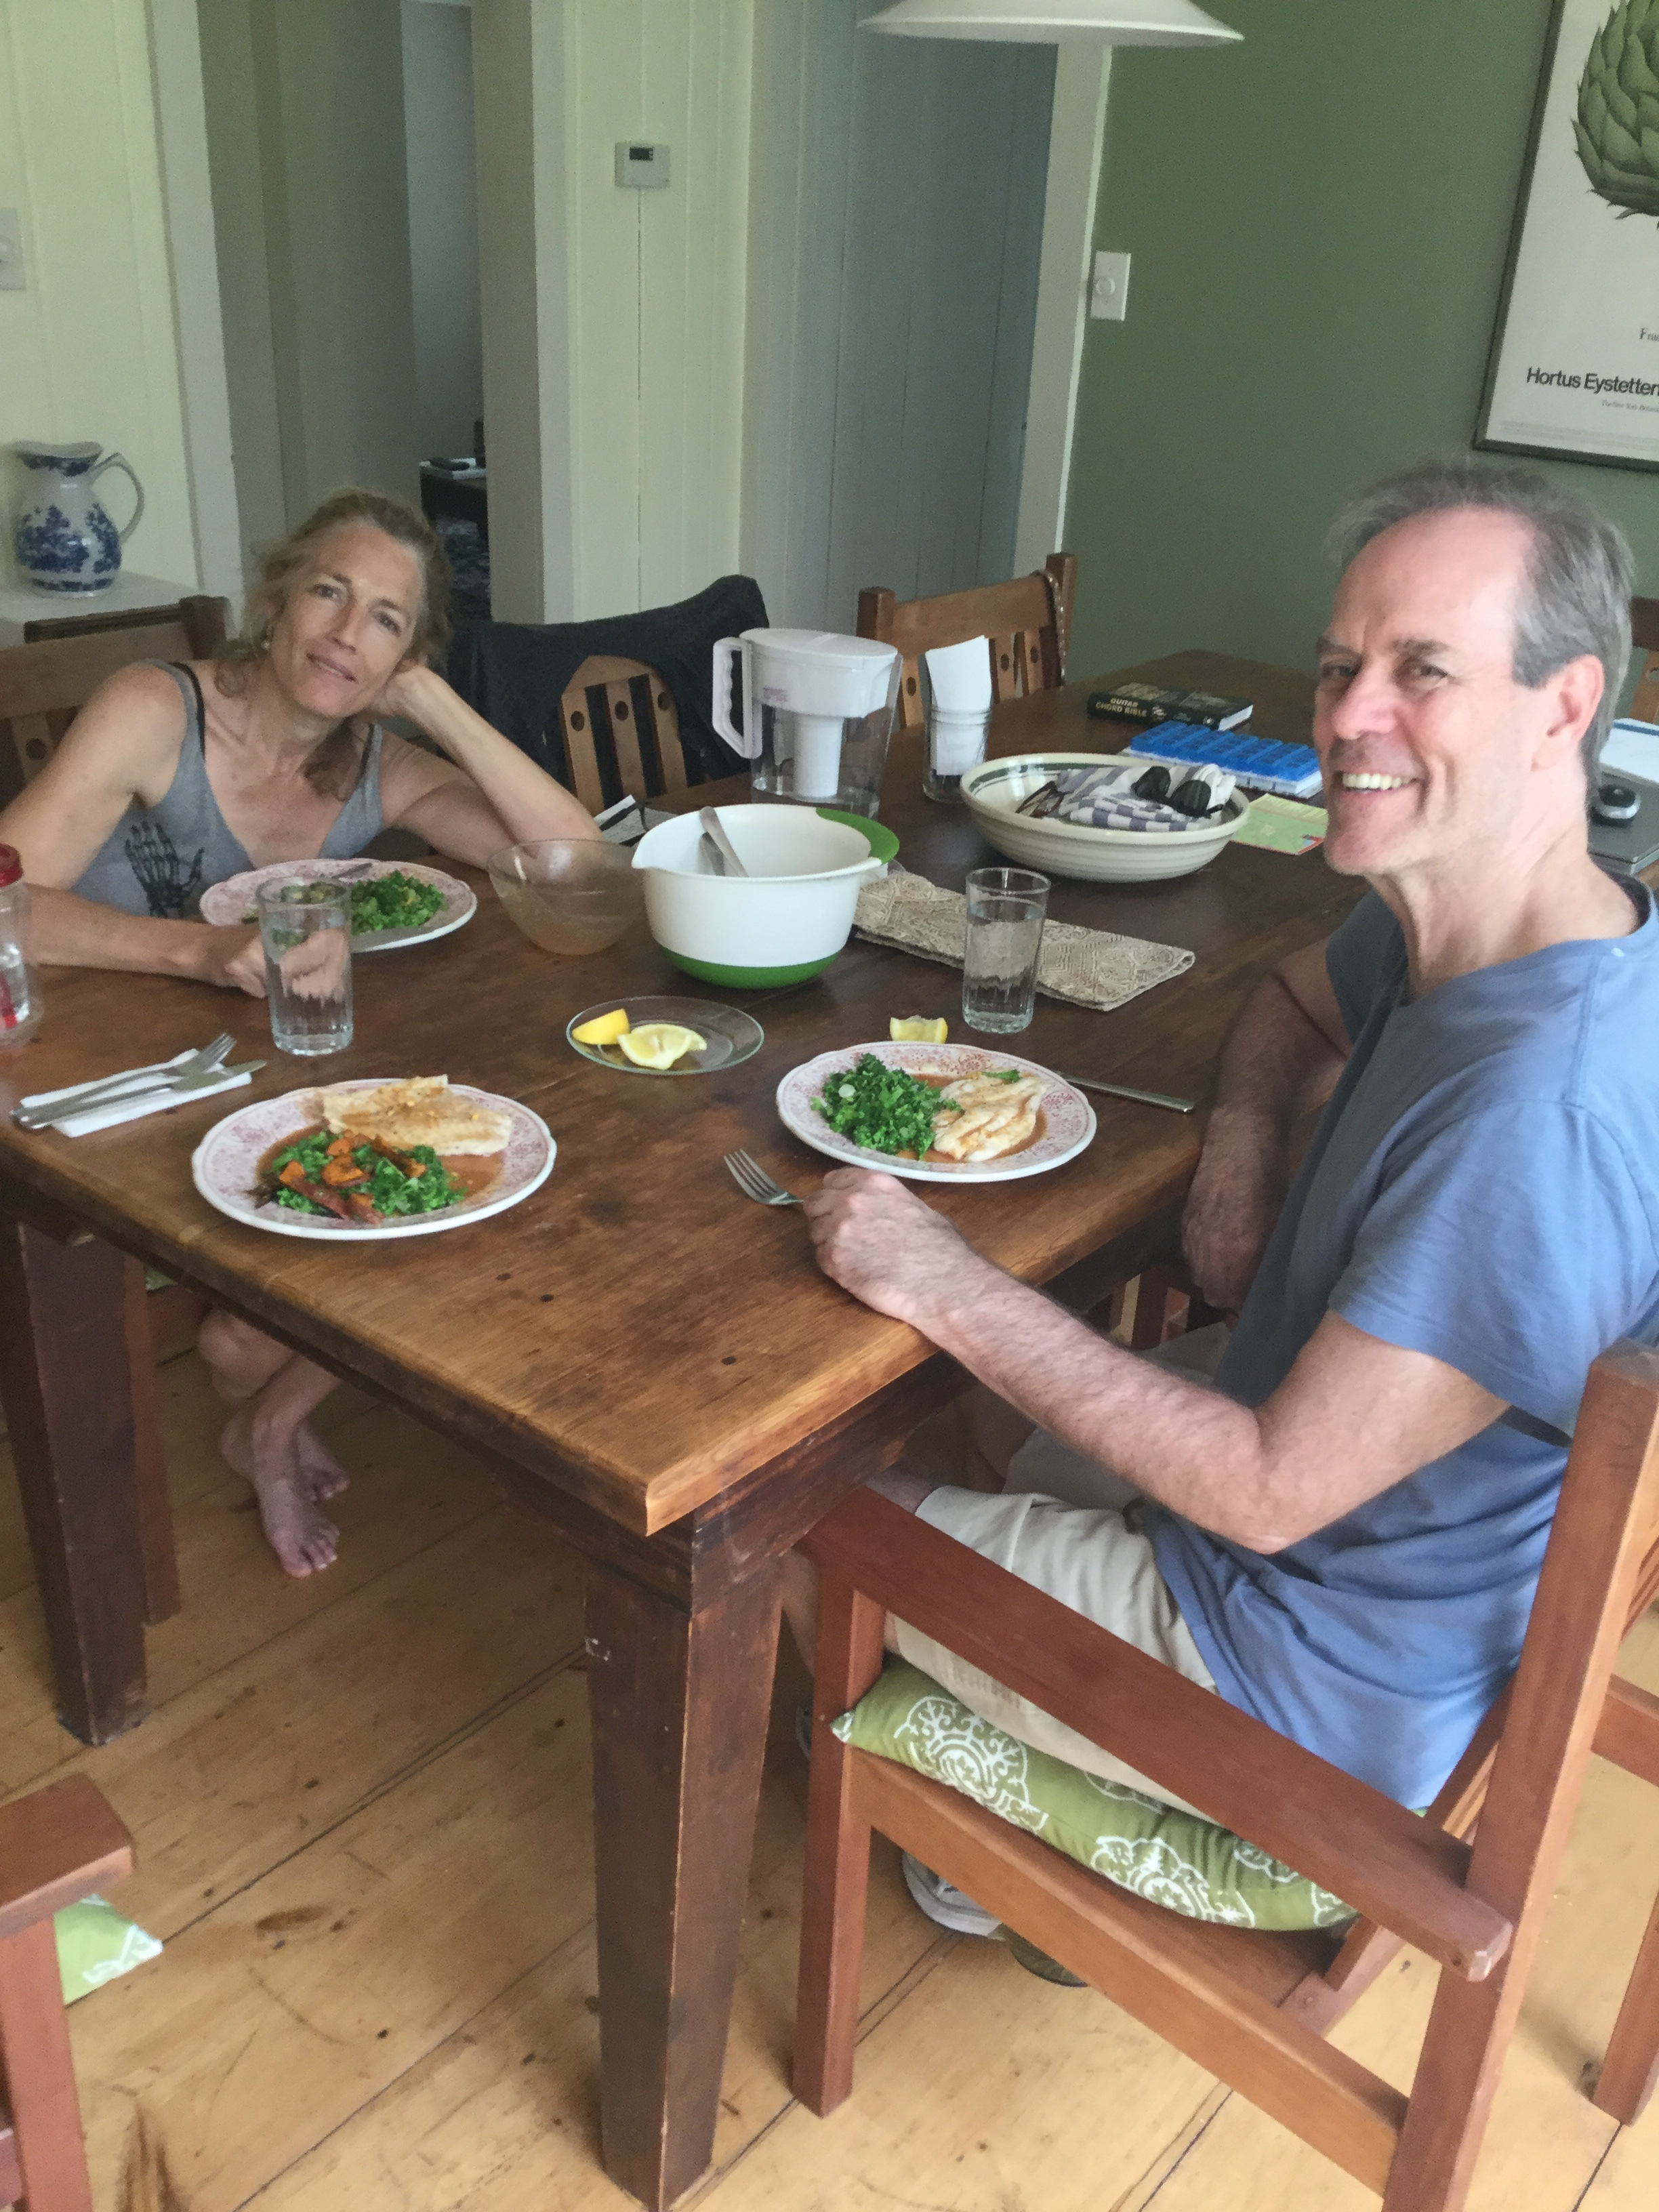 Father's Day meal in the country. My hands then cramped up from all the cooking and I couldn't hold my fork.